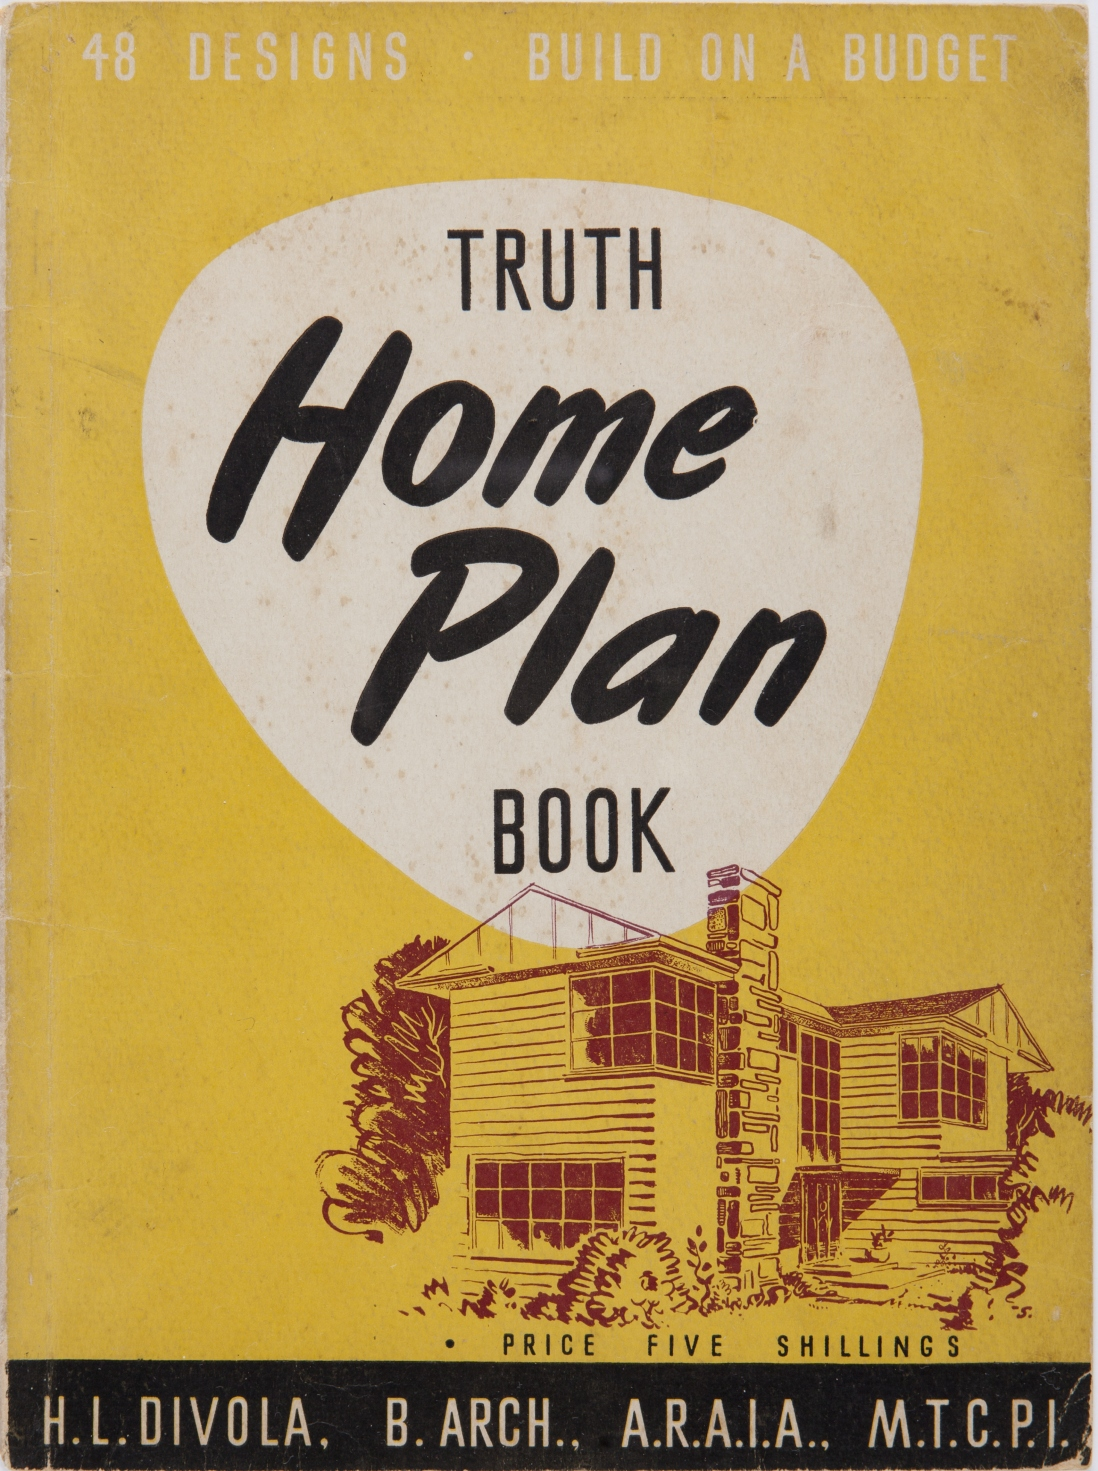 Cover of book, yellow background with drawing of house in brown and black.